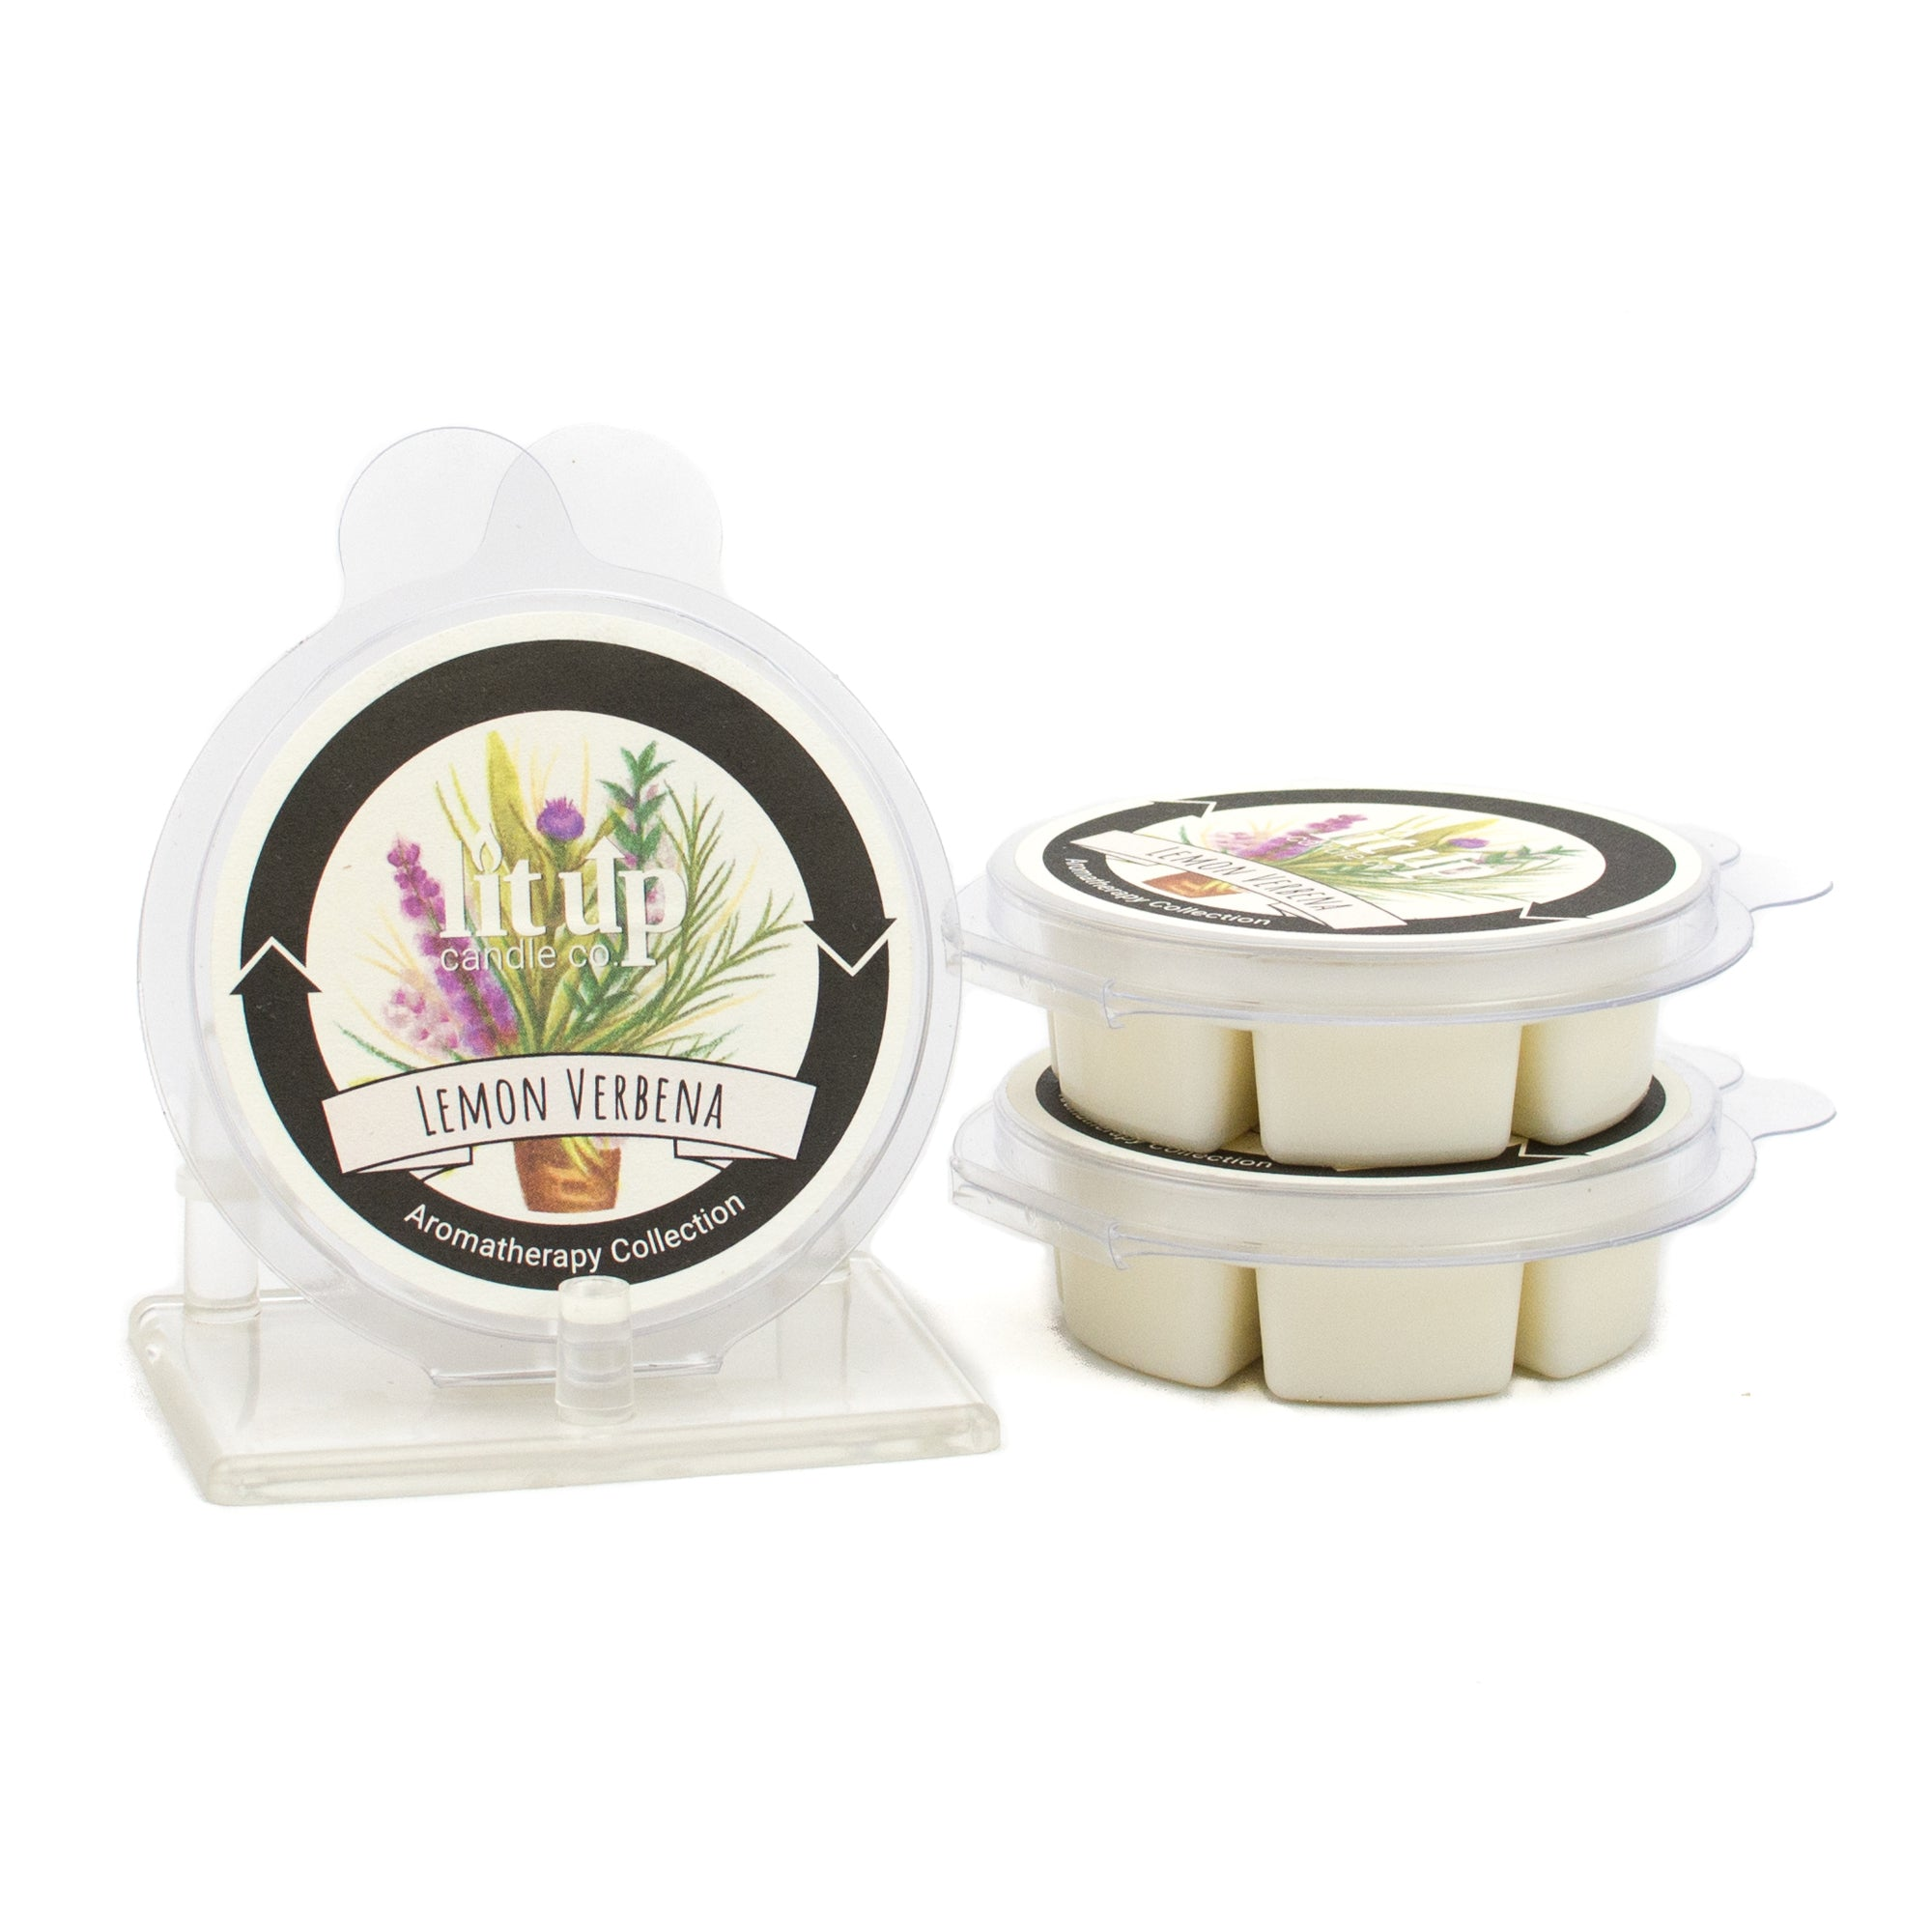 Lemon Verbena Soy Wax Melt